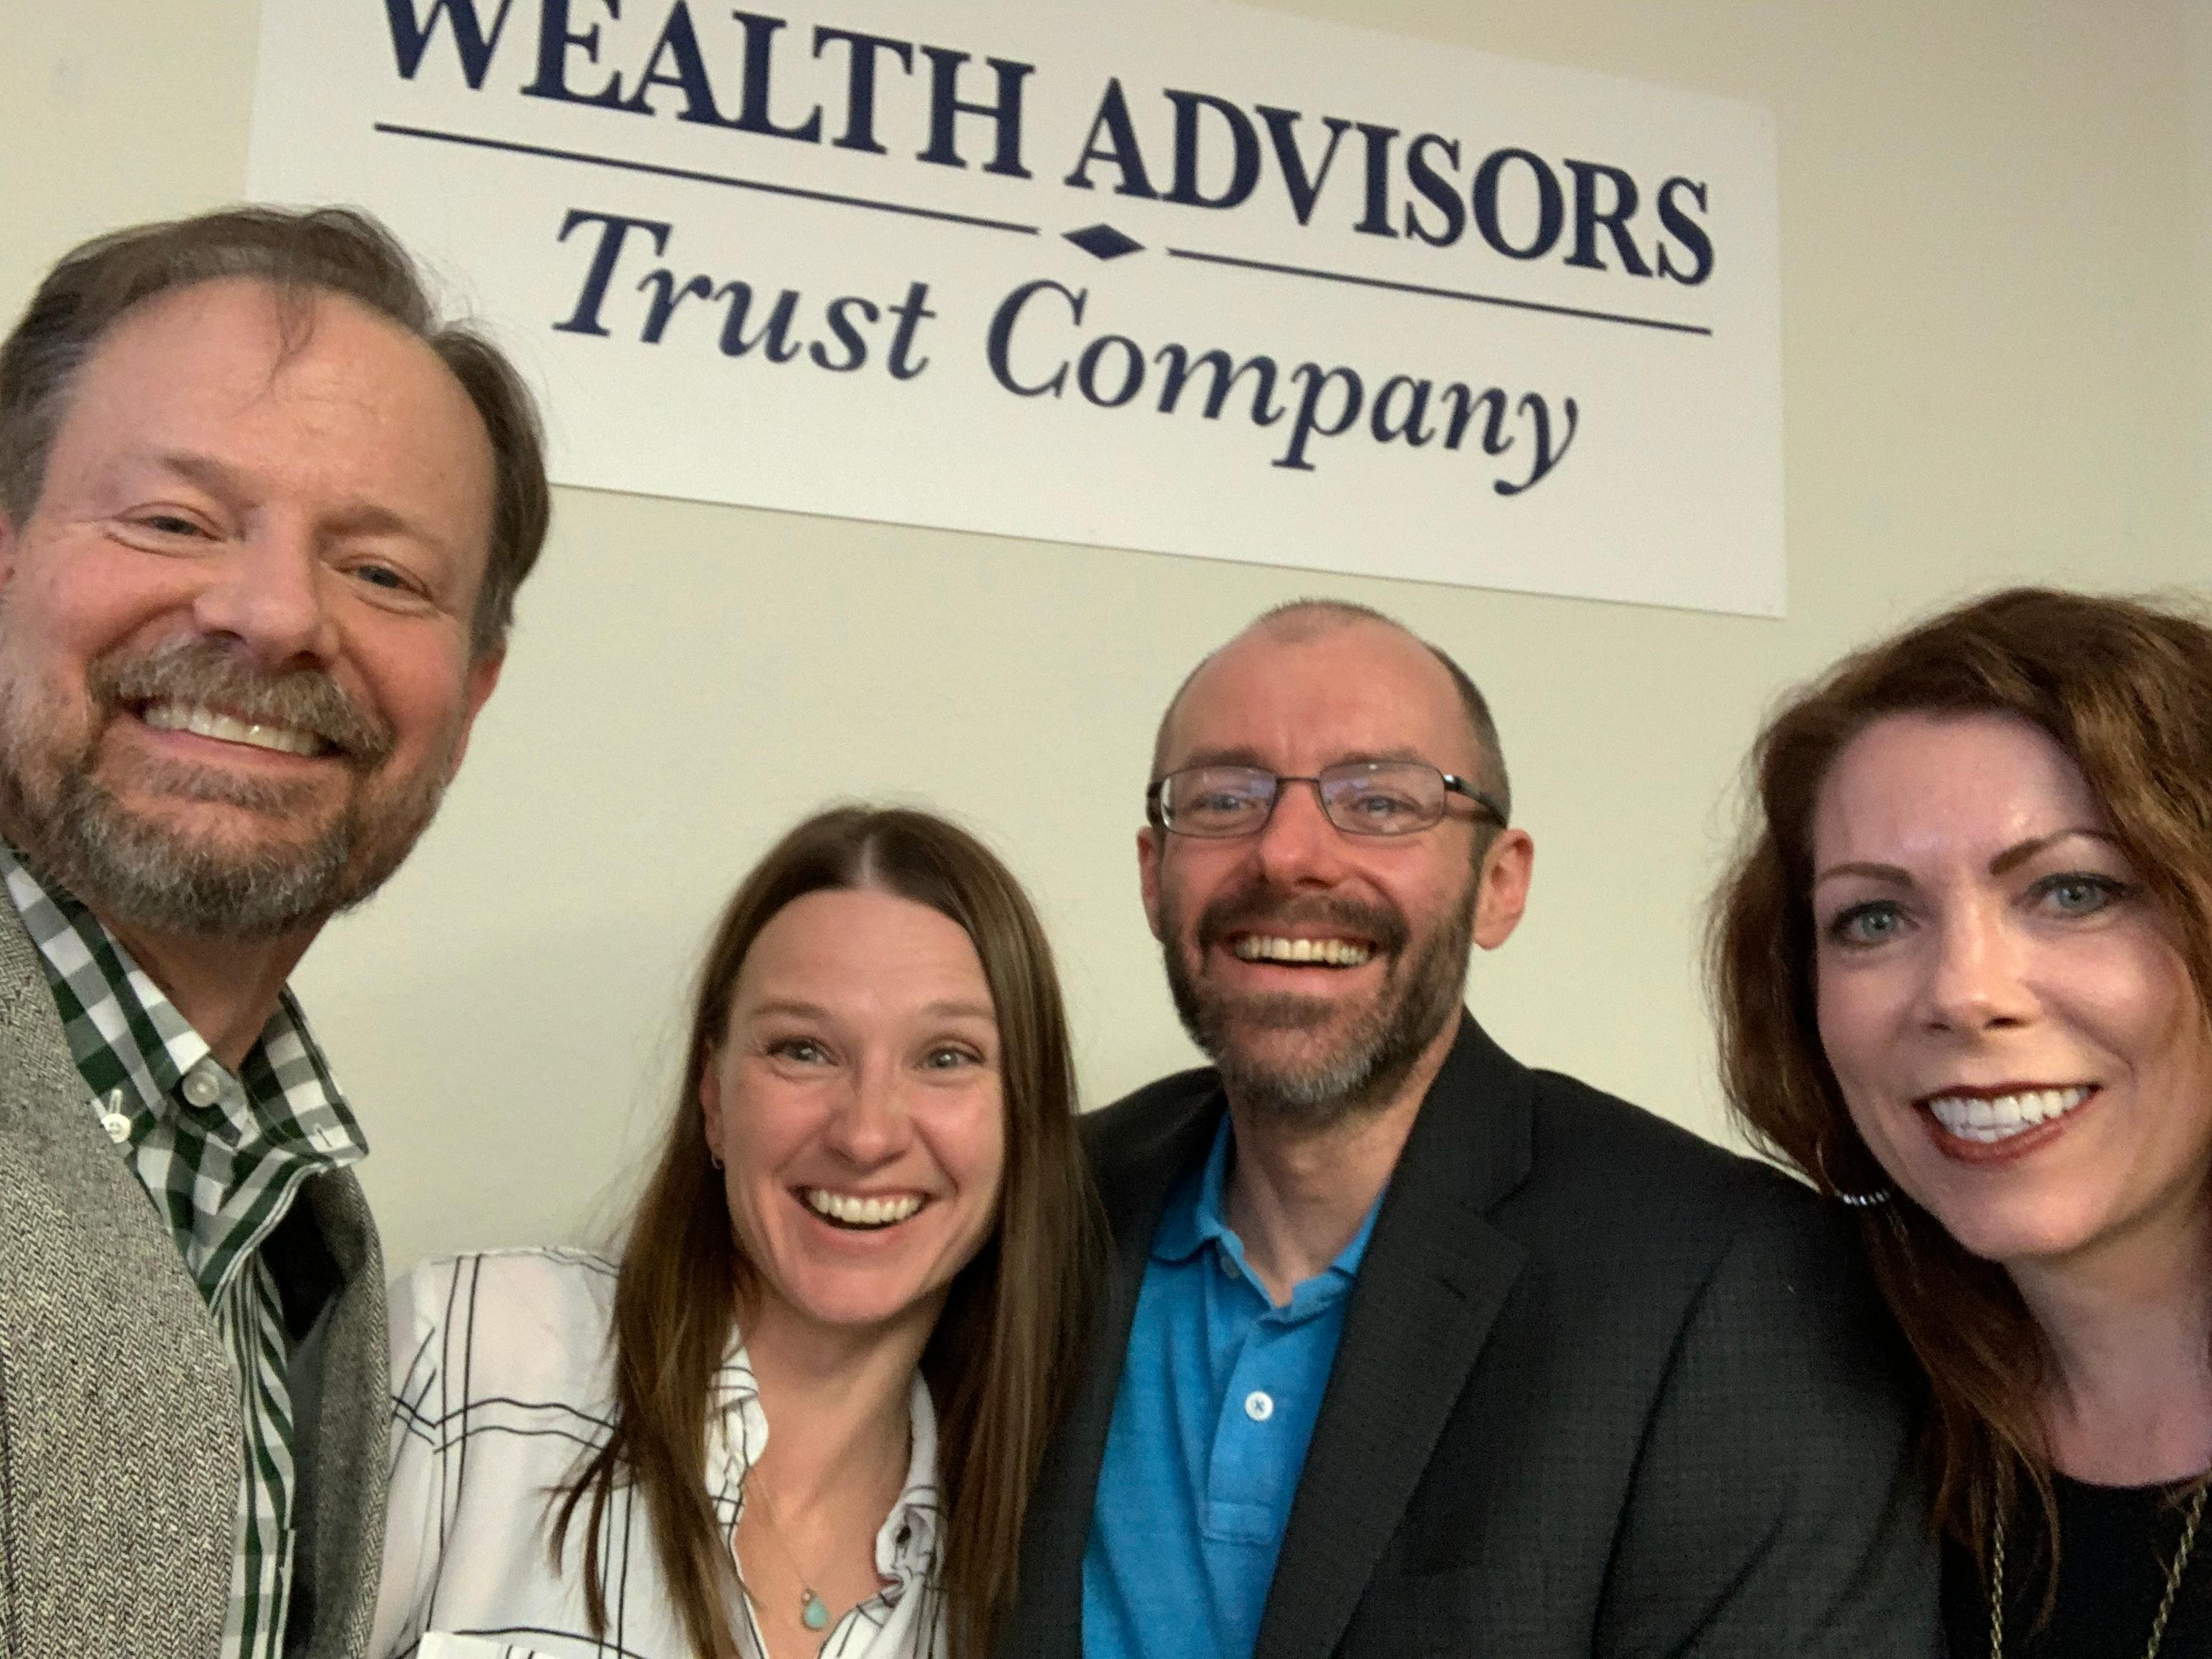 People Americas advisor friendly trust company 2020